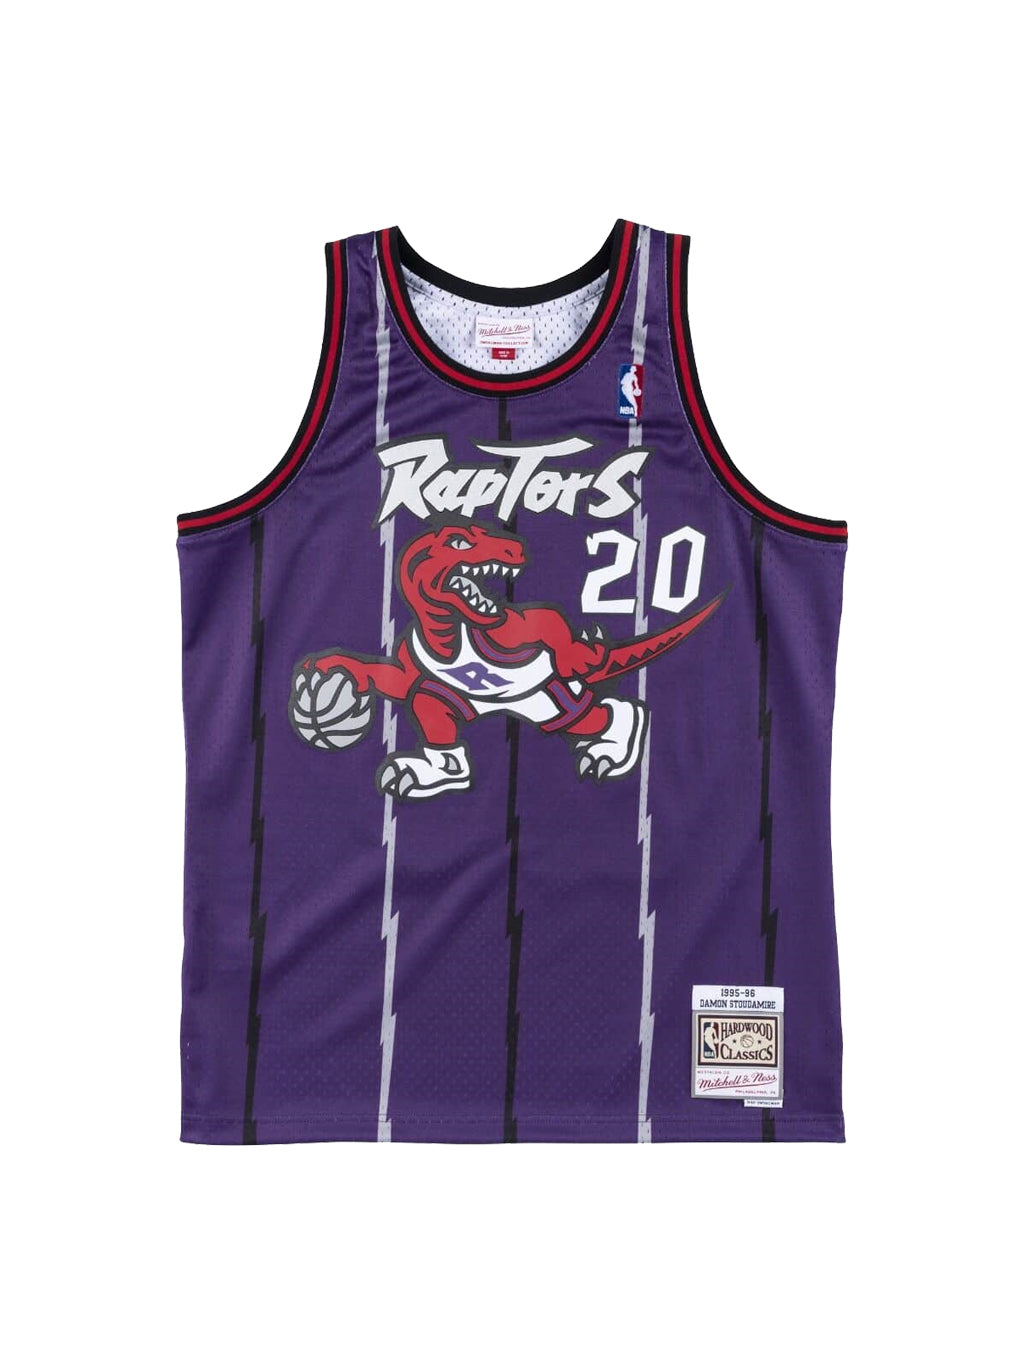 Purple NBA Toronto Raptors Swingman Jersey Damon Stoudamire 95-96 Tank Top